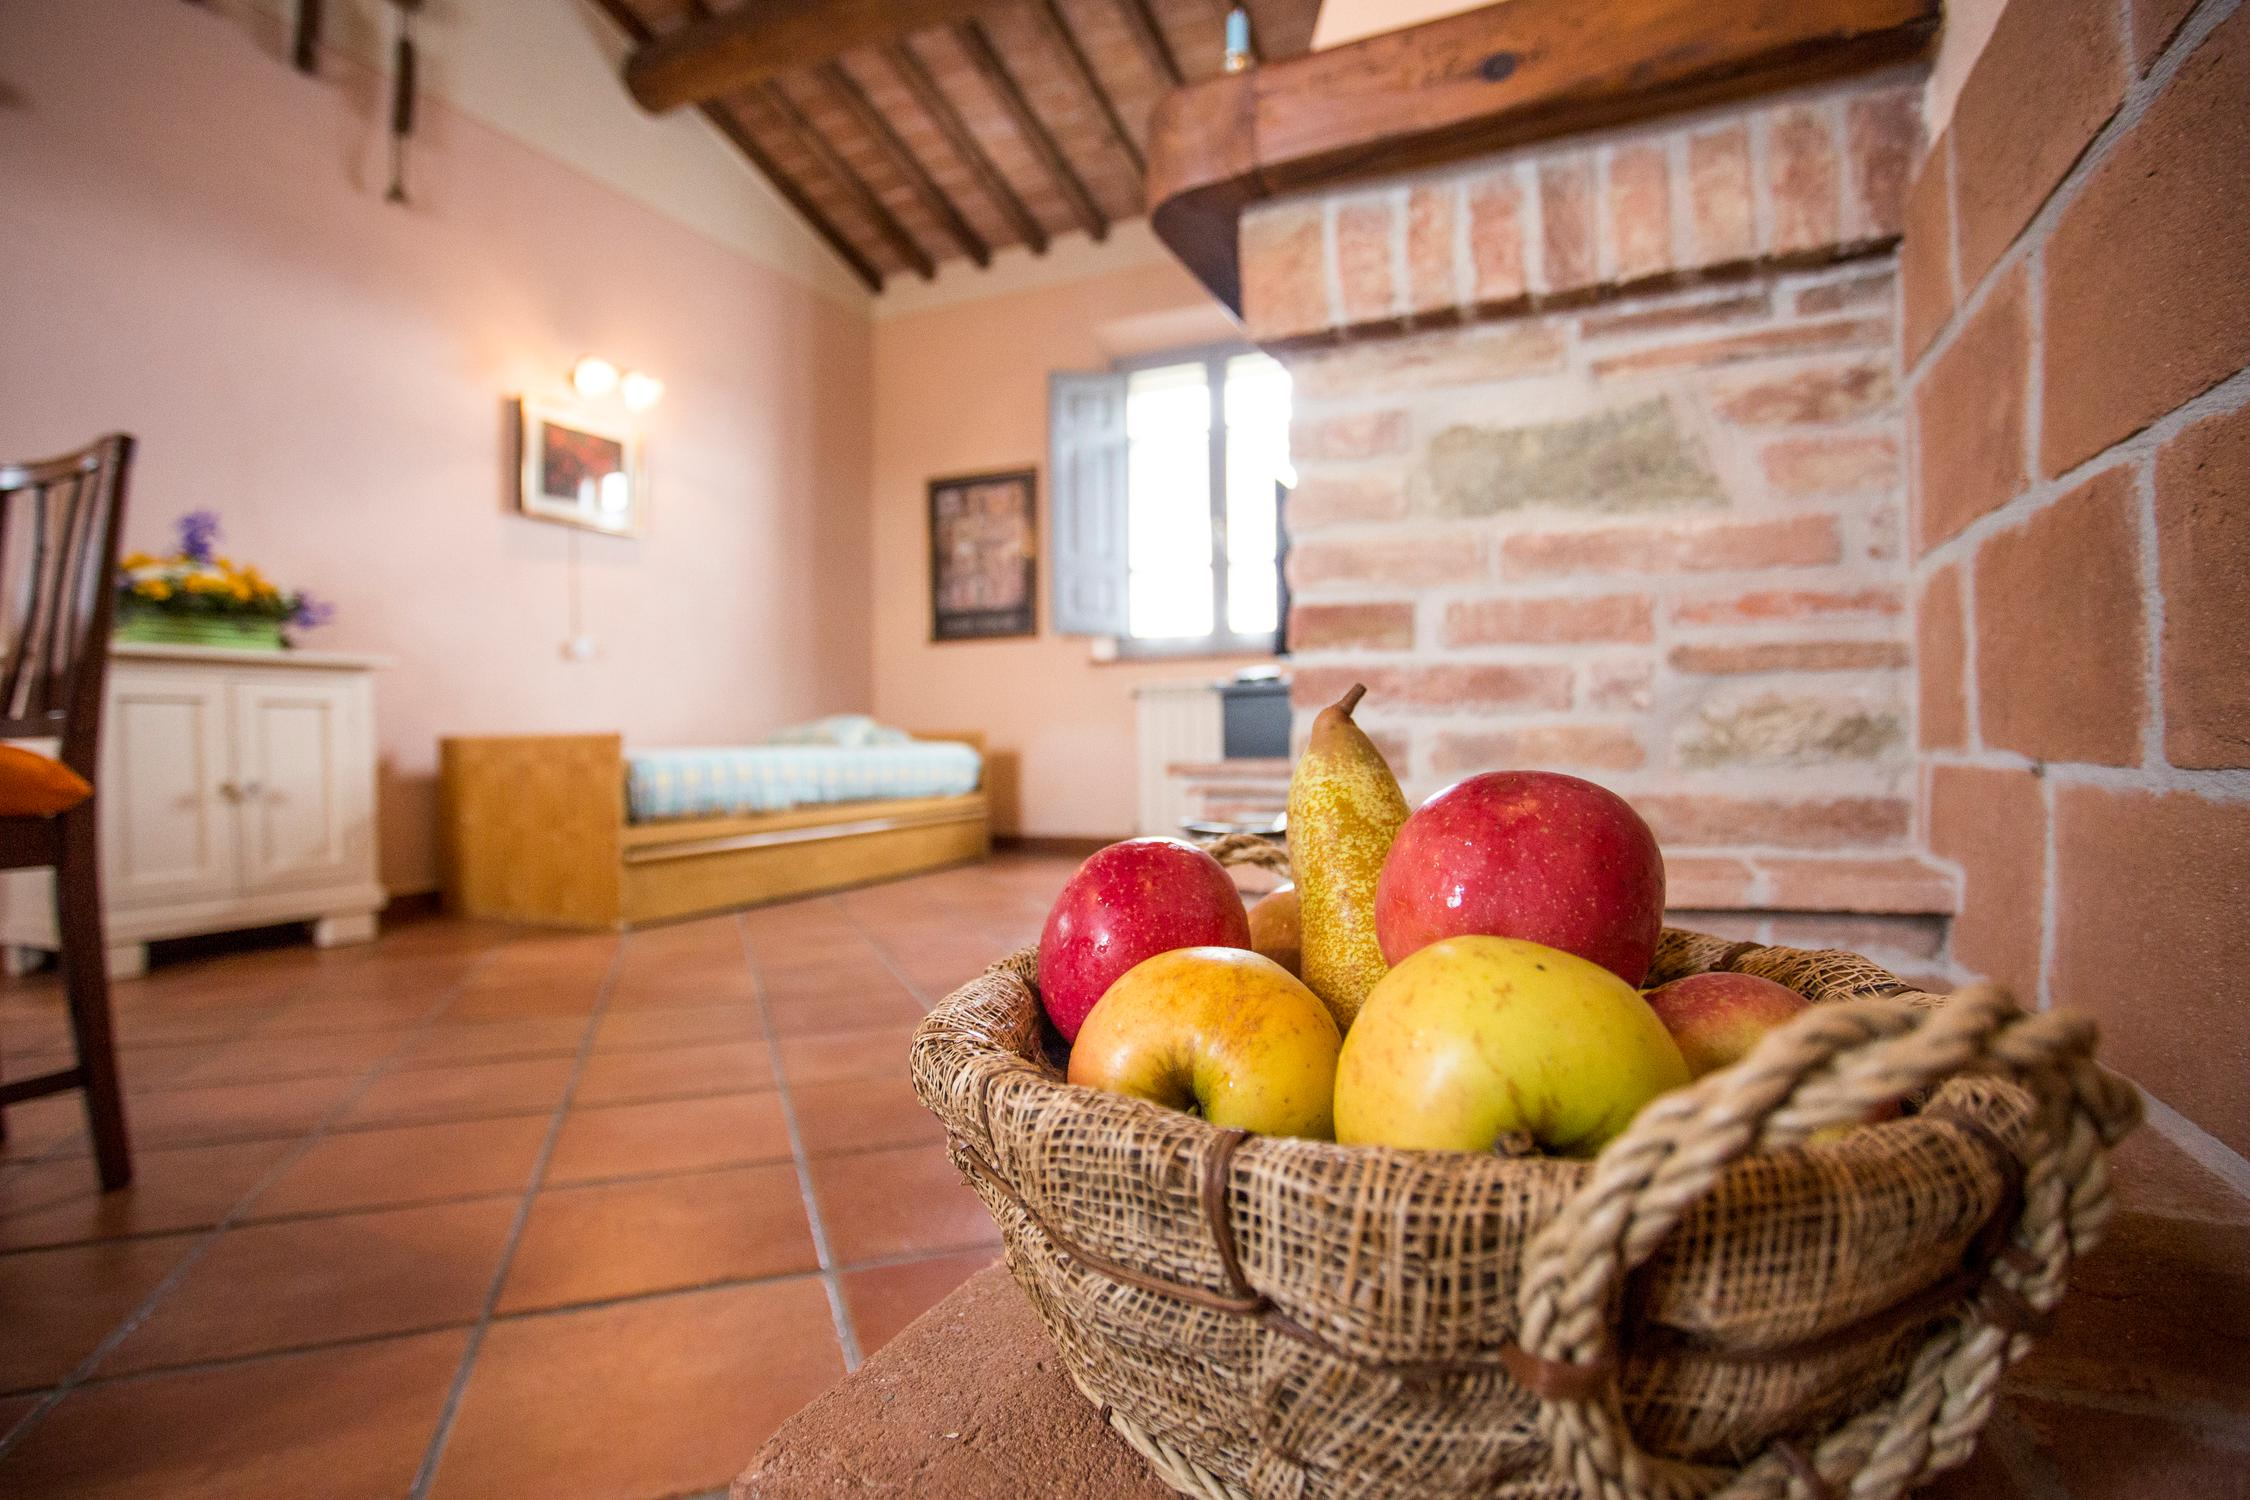 Apartments with swimming pool in Foiano della Chiana, near Cortona, Arezzo